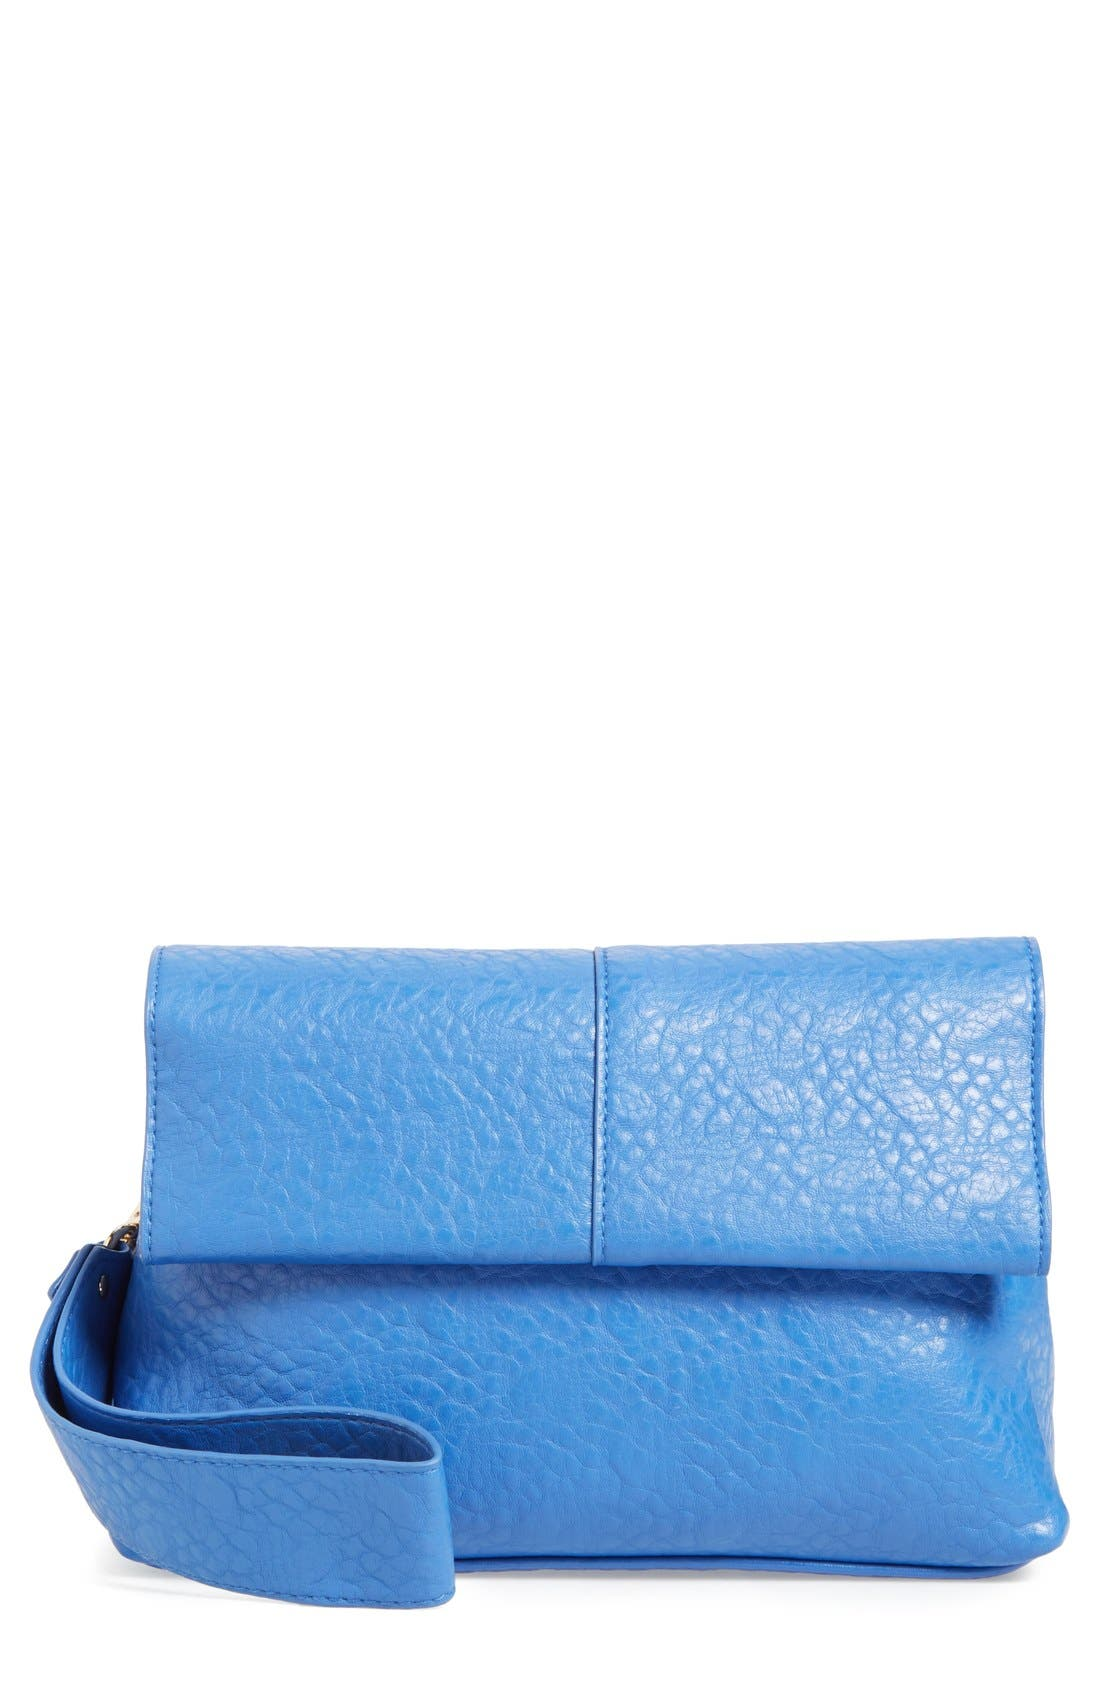 Alternate Image 1 Selected - POVERTY FLATS by rian Faux Leather Convertible Crossbody Bag